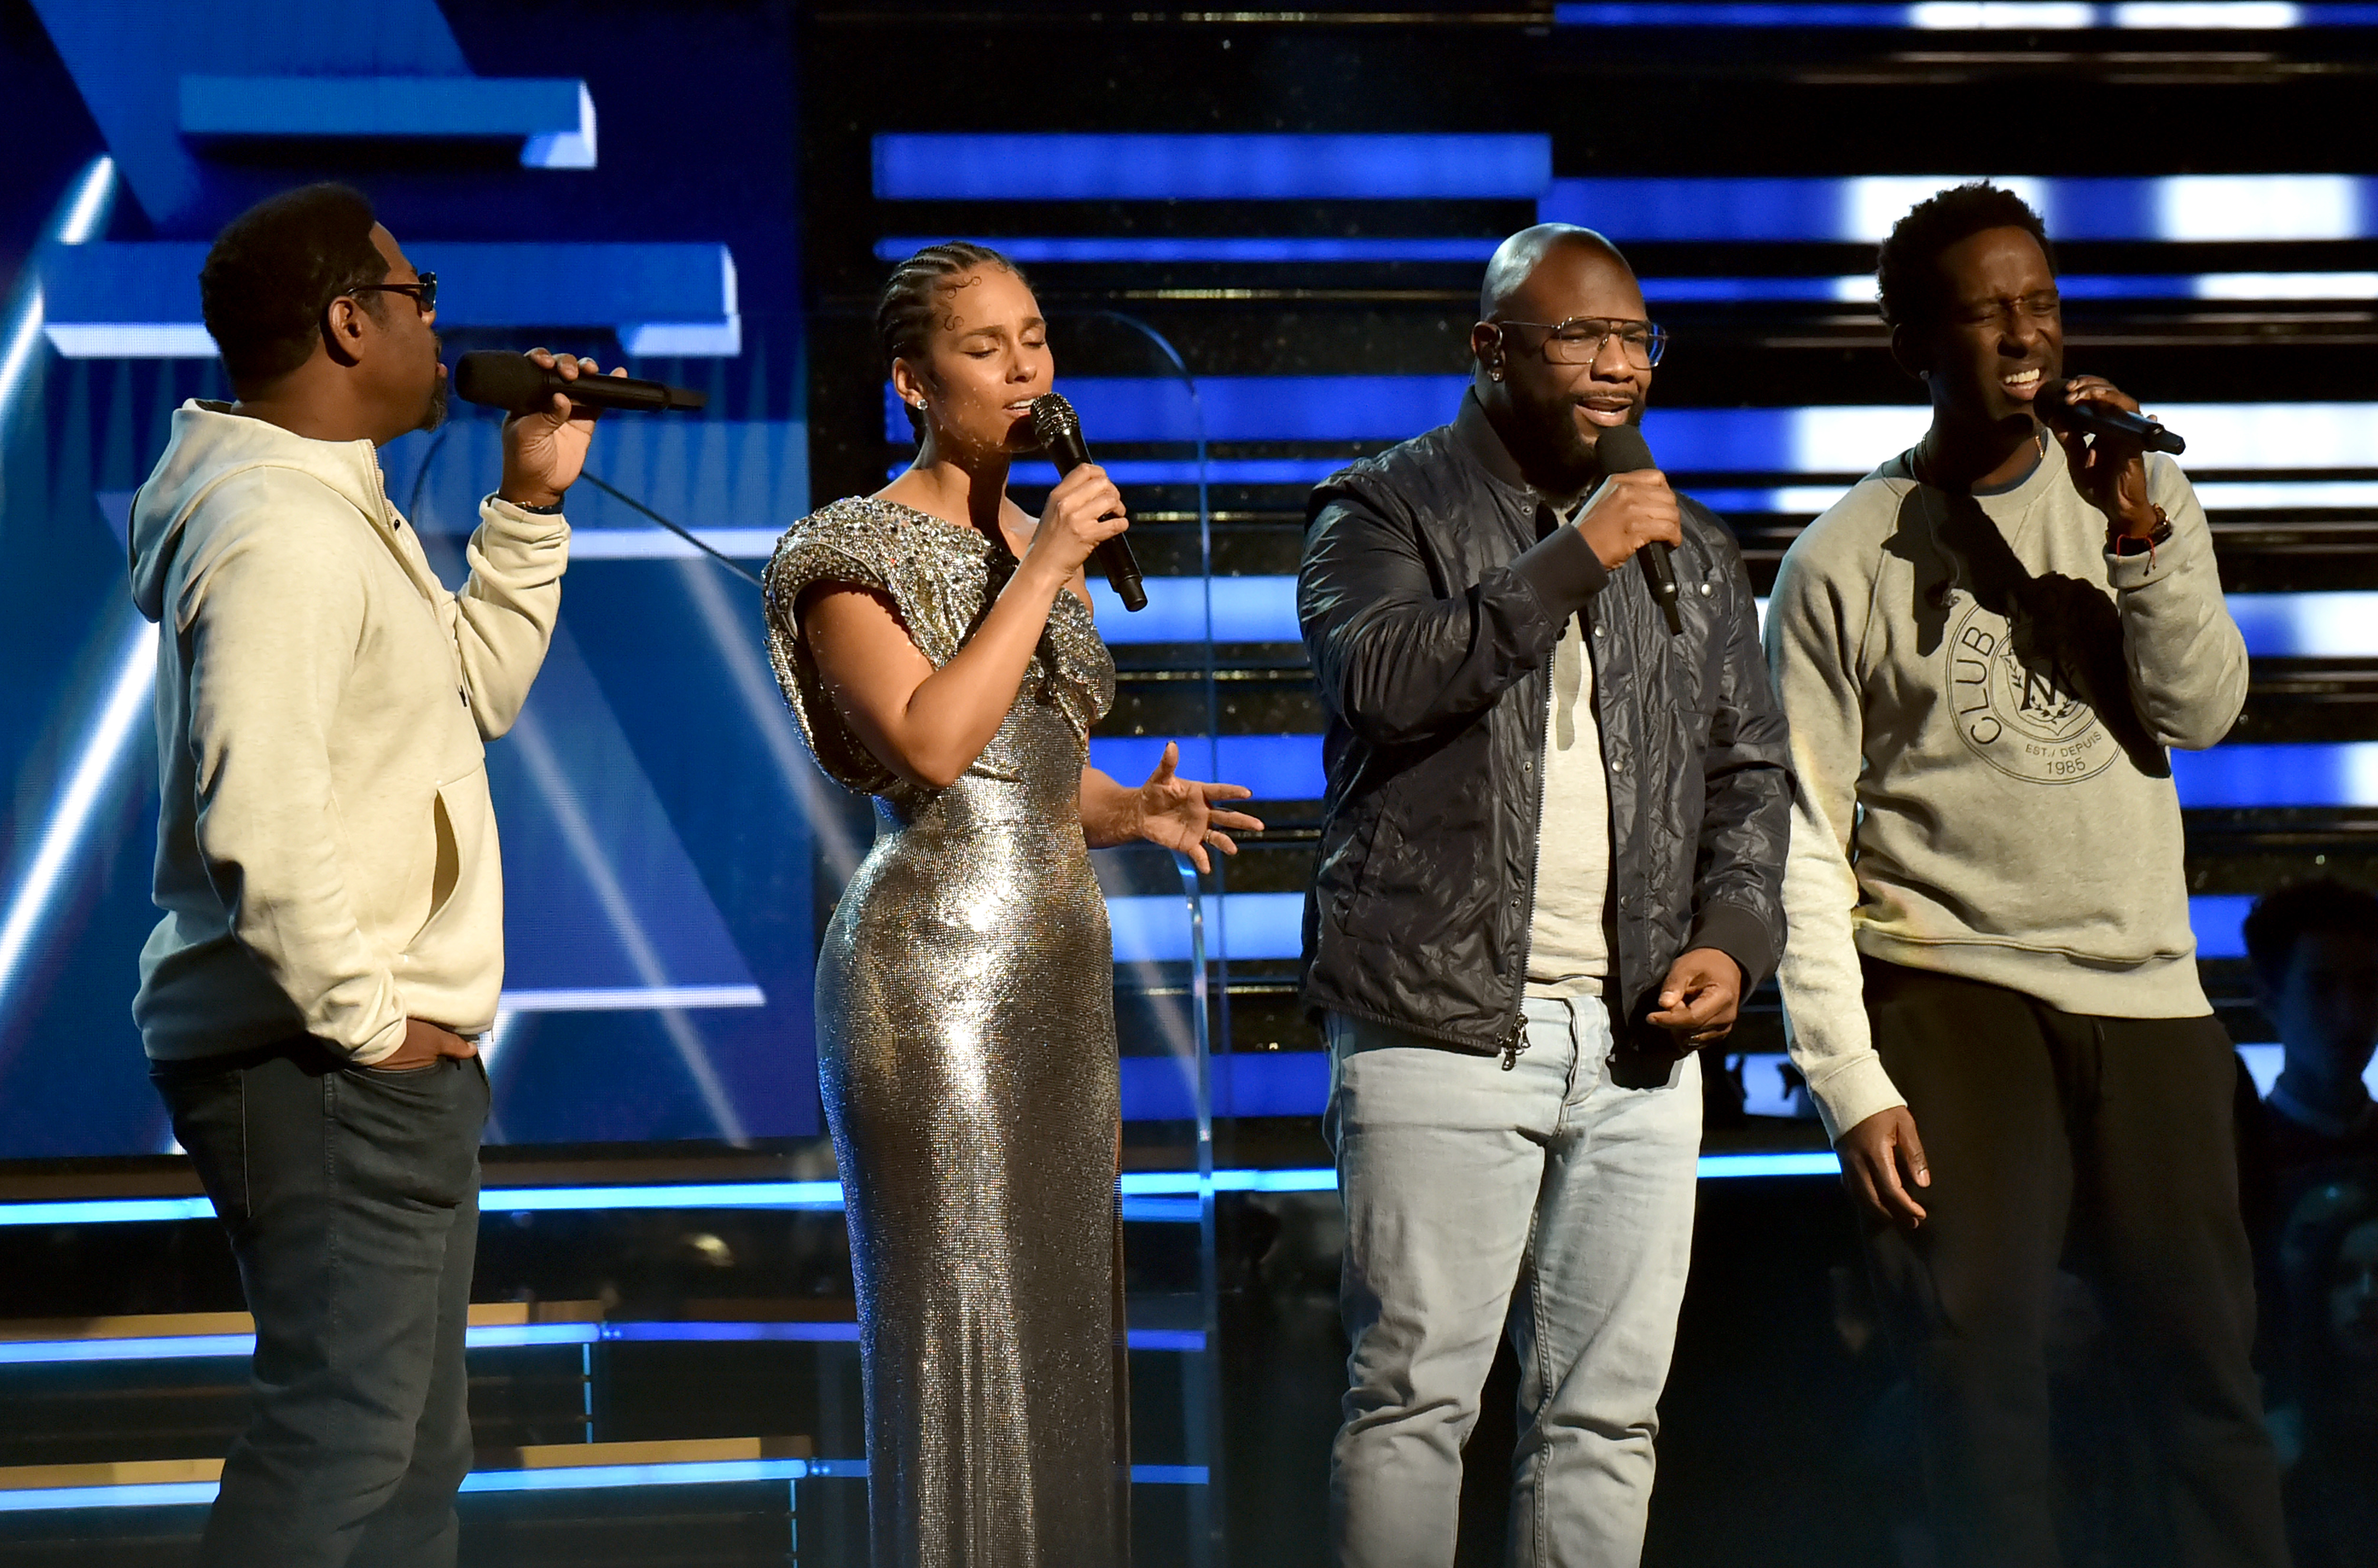 Alicia Keys and Nathan Morris, Wanya Morris, and Shawn Stockman of Boyz II Men perform onstage during the 62nd Annual GRAMMY Awards on January 26, 2020 in Los Angeles, California.